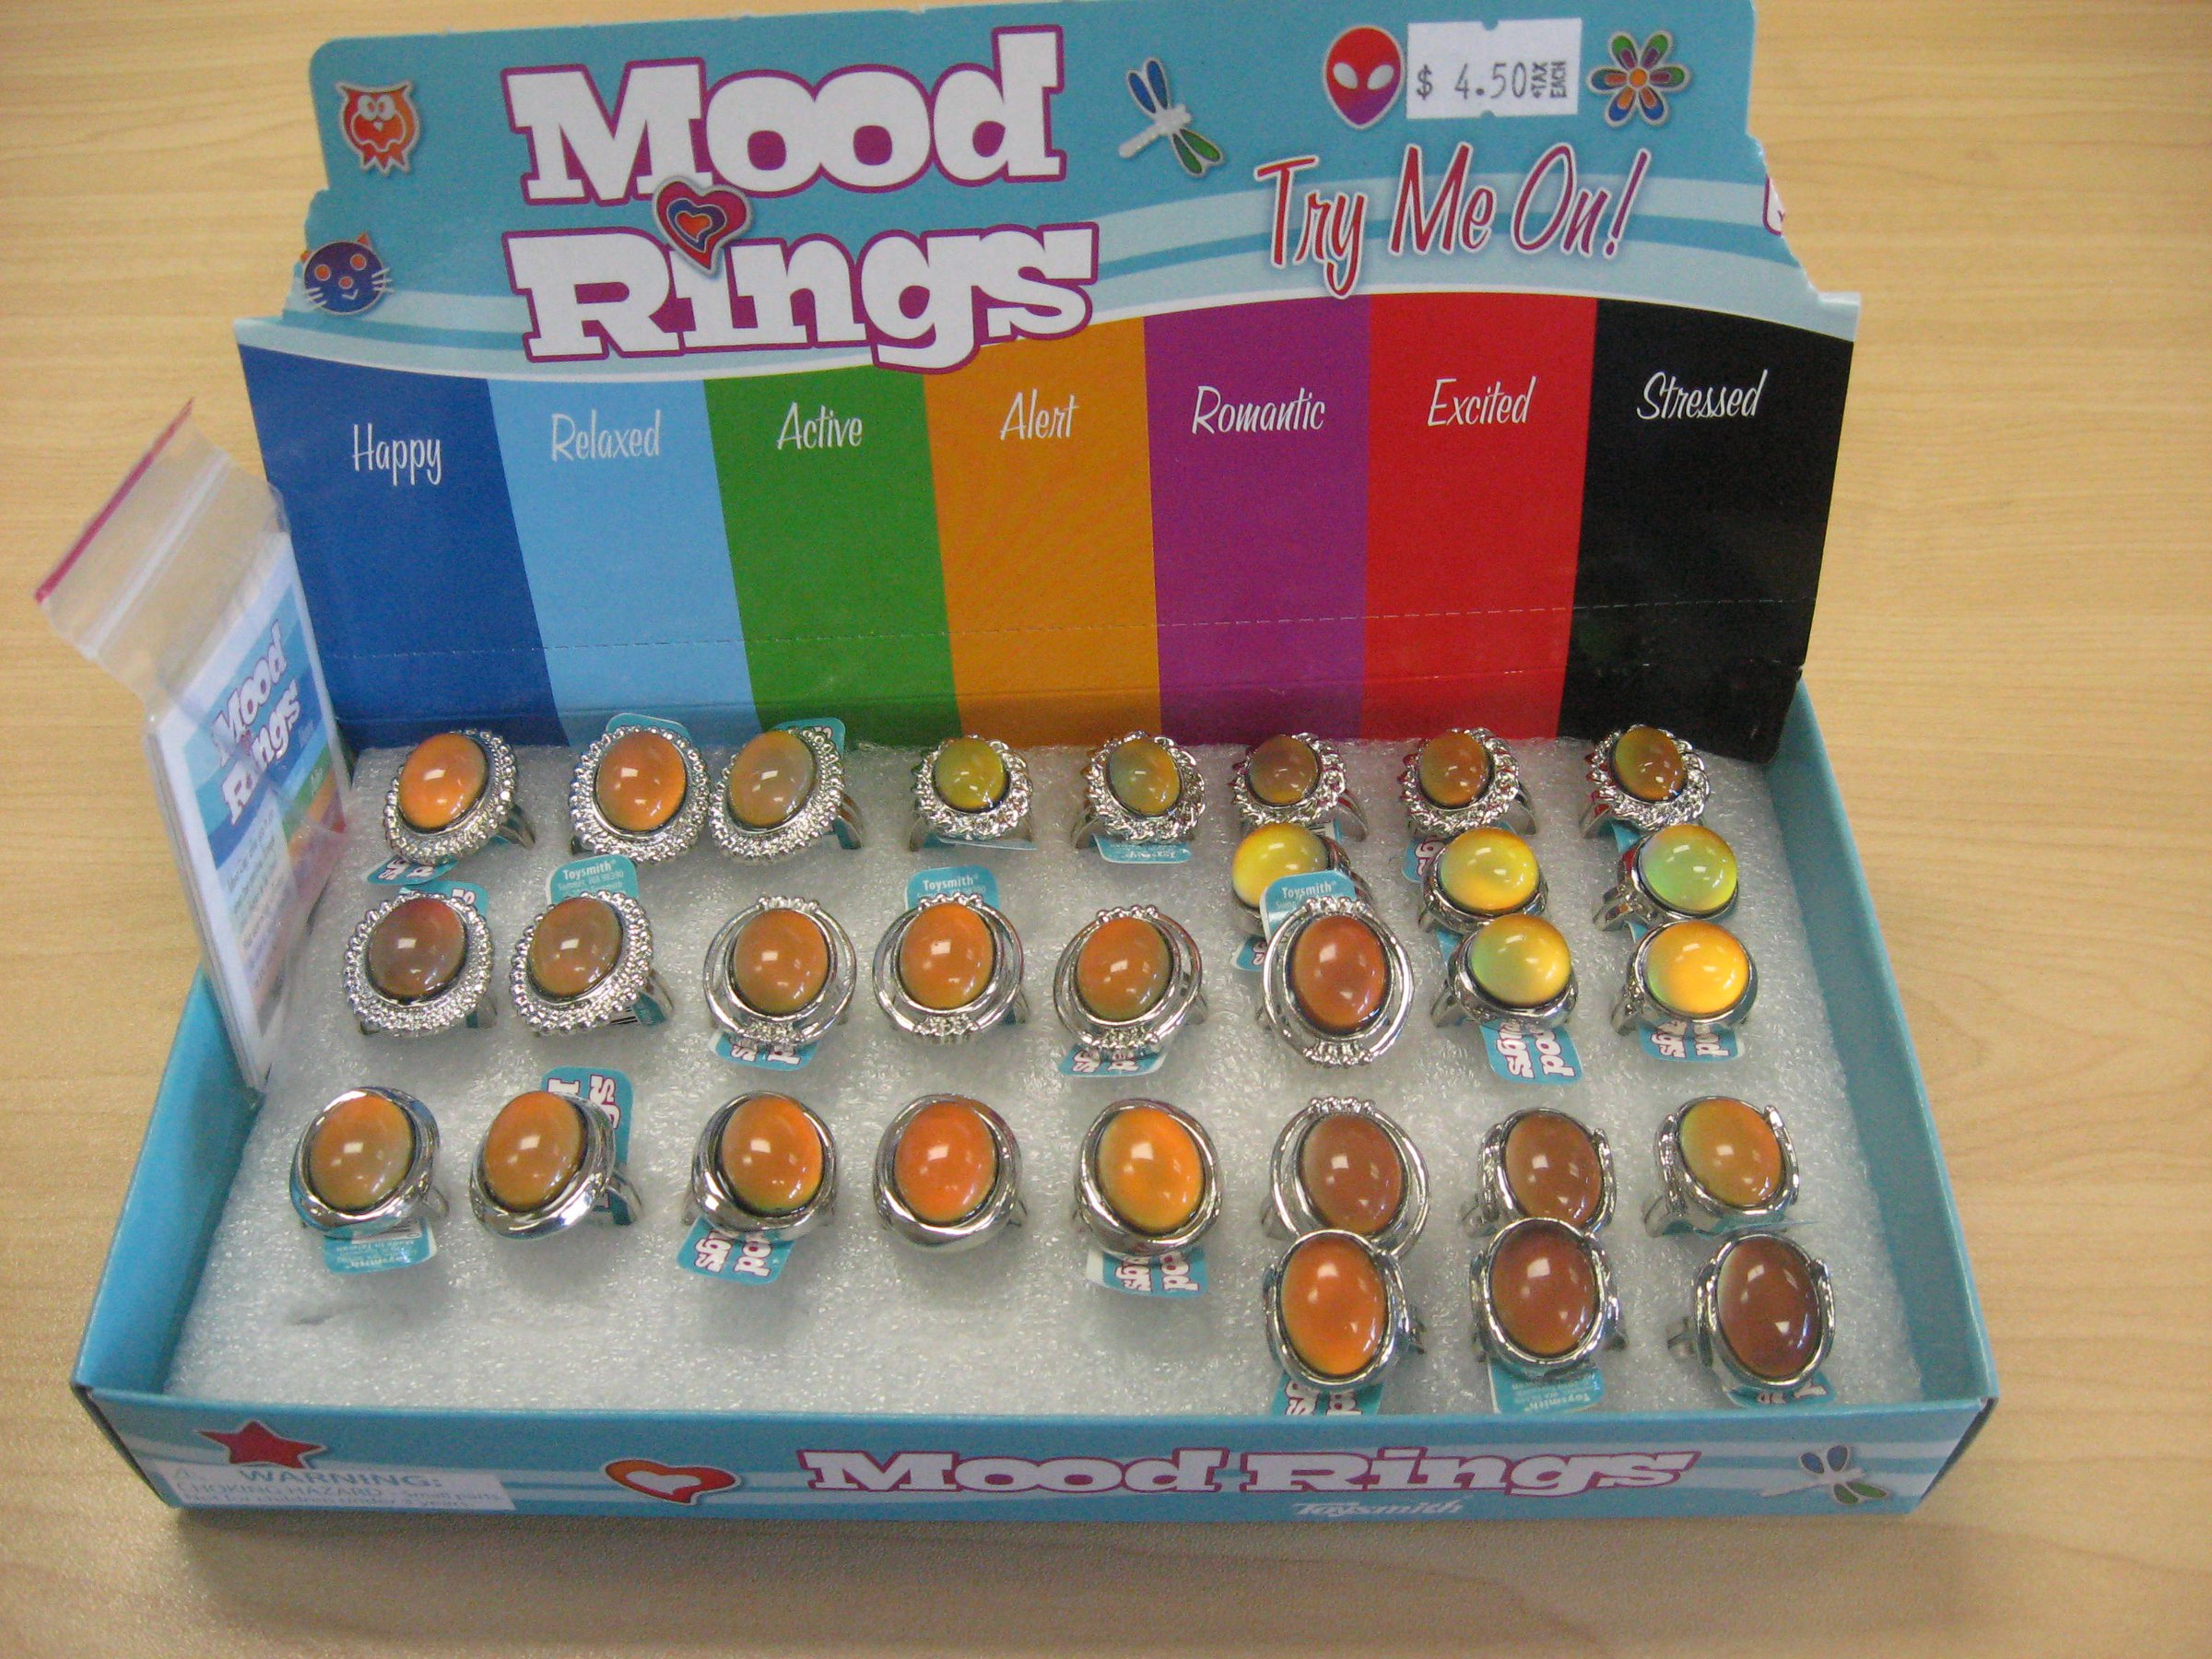 Mood rings what do the colors mean excellent idea meanings google excellent idea meanings google mood rings colors google search color charts with mood rings what do the colors mean geenschuldenfo Image collections